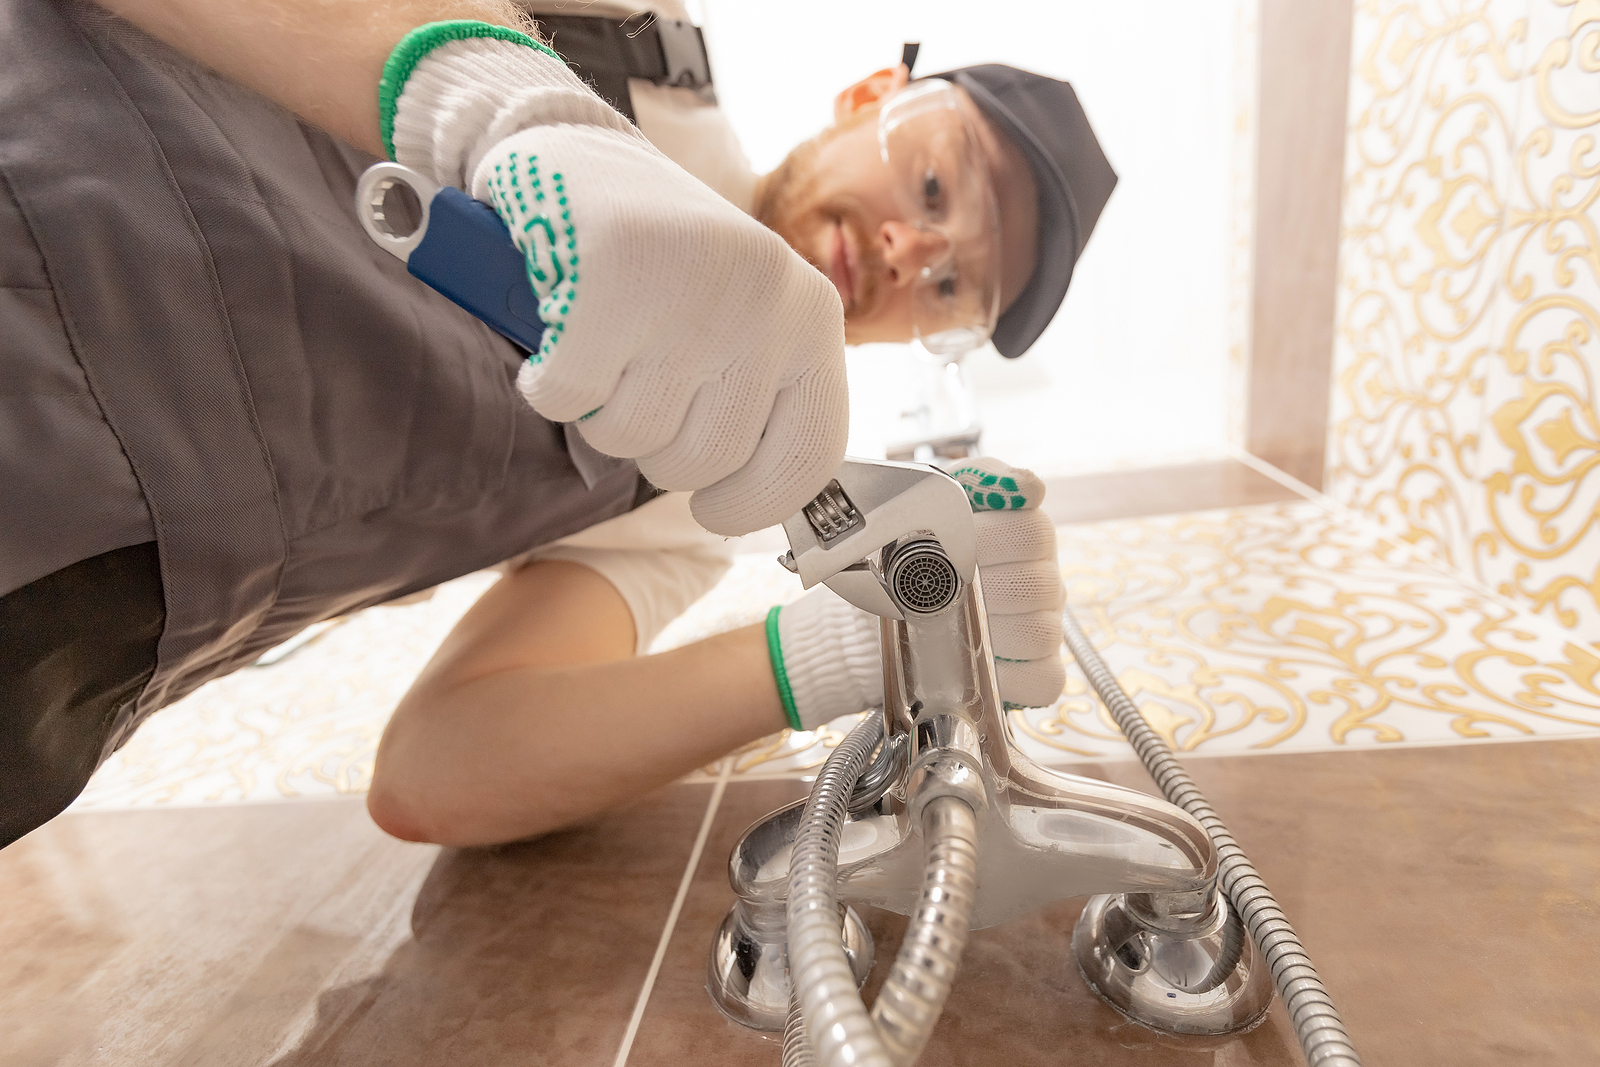 plumber while working